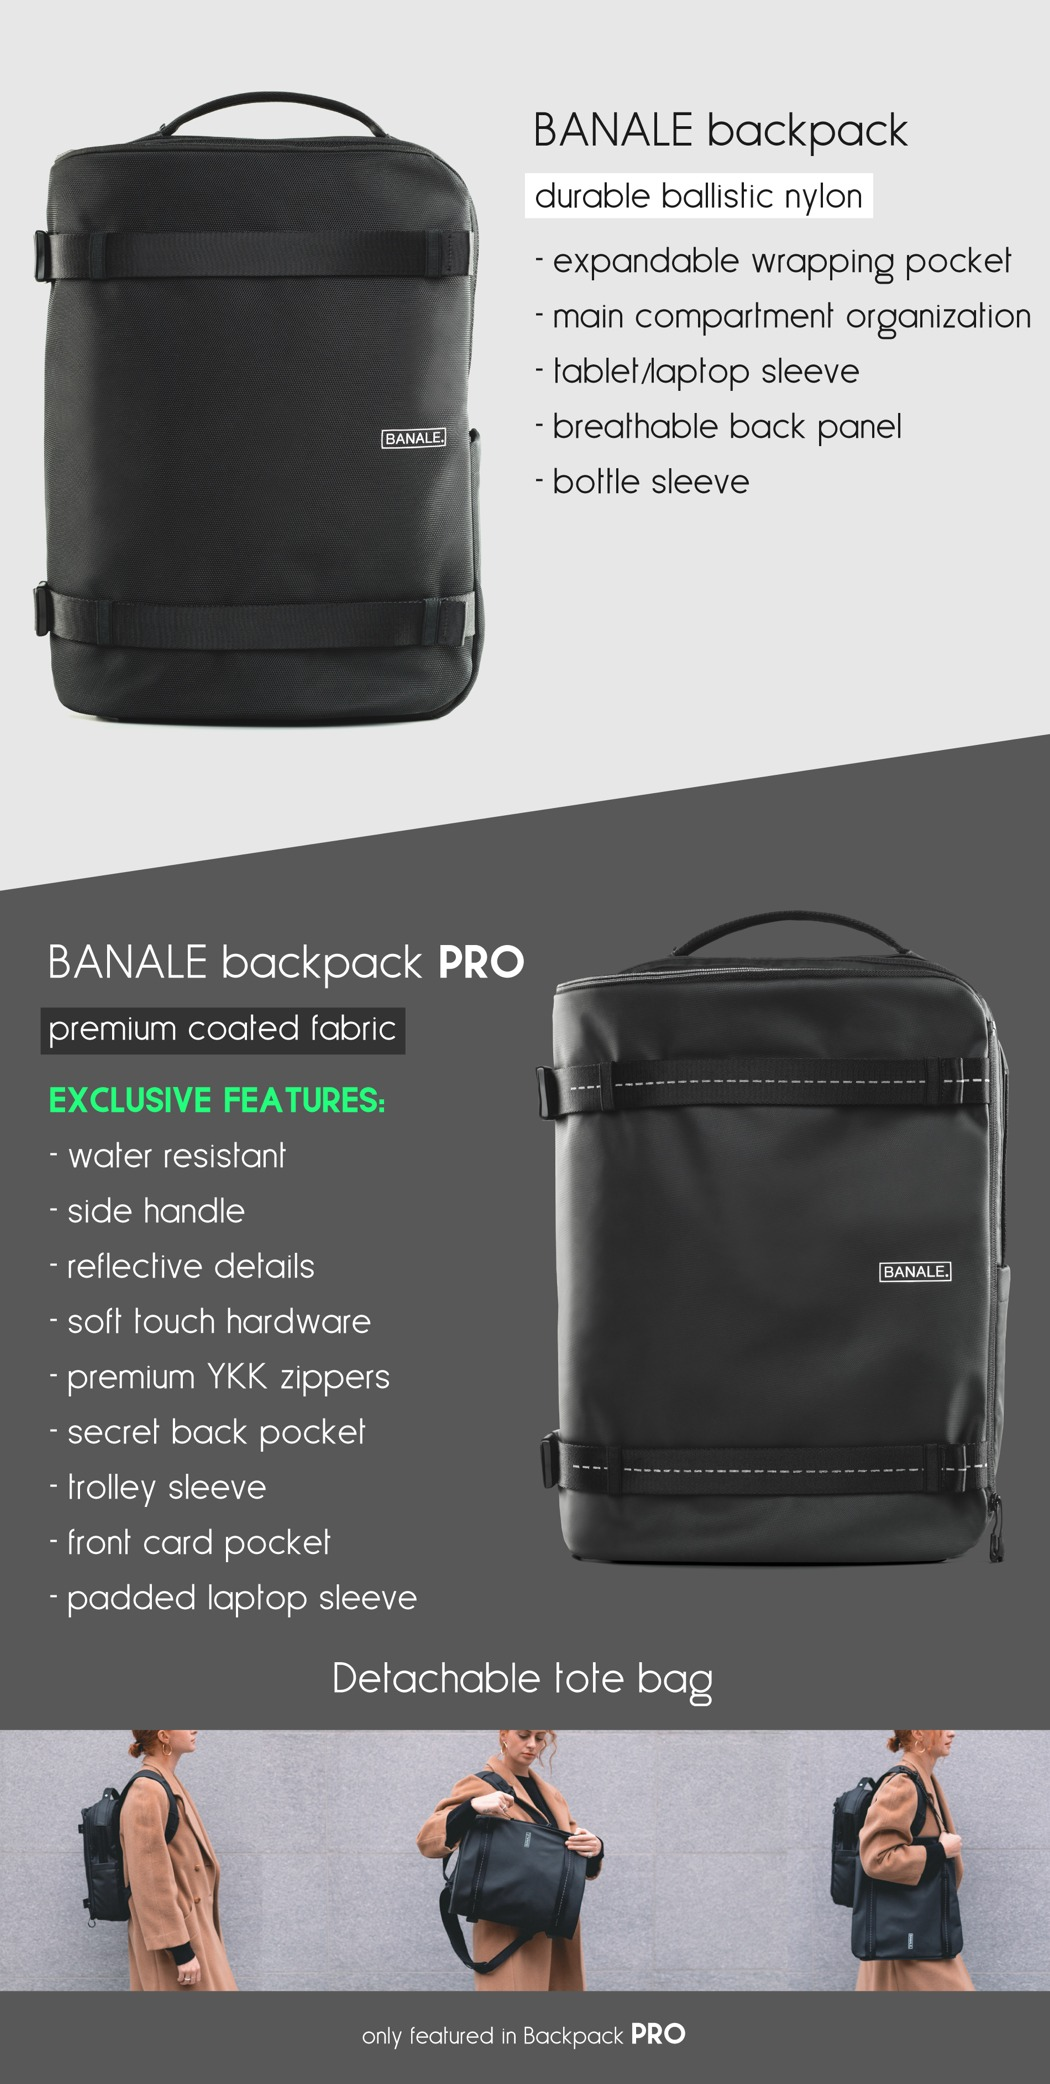 banale_exapandable_backpack_02